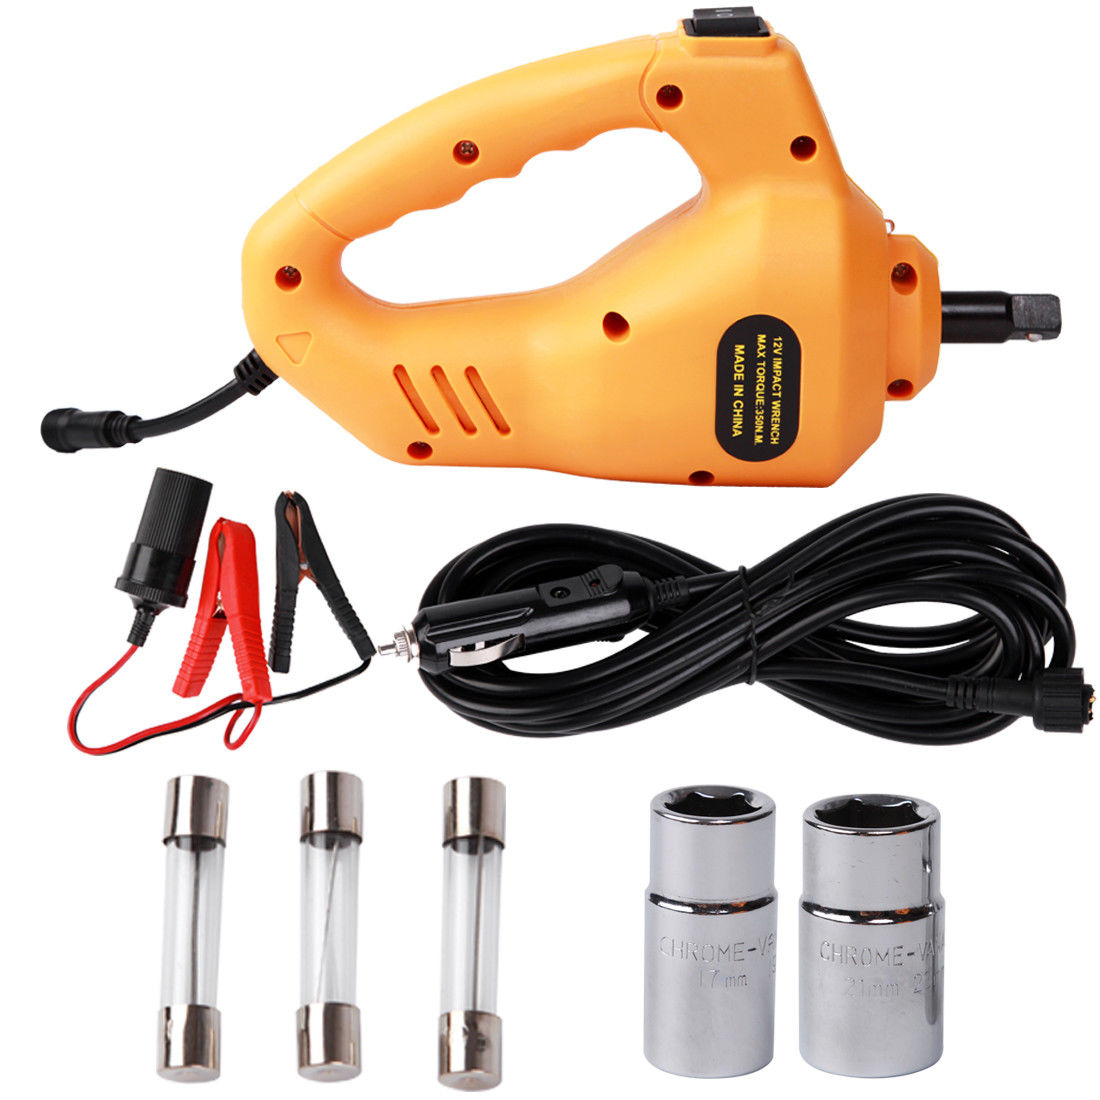 Electric Power Impact Wrench Automotive Kit Air Car Repair Tool